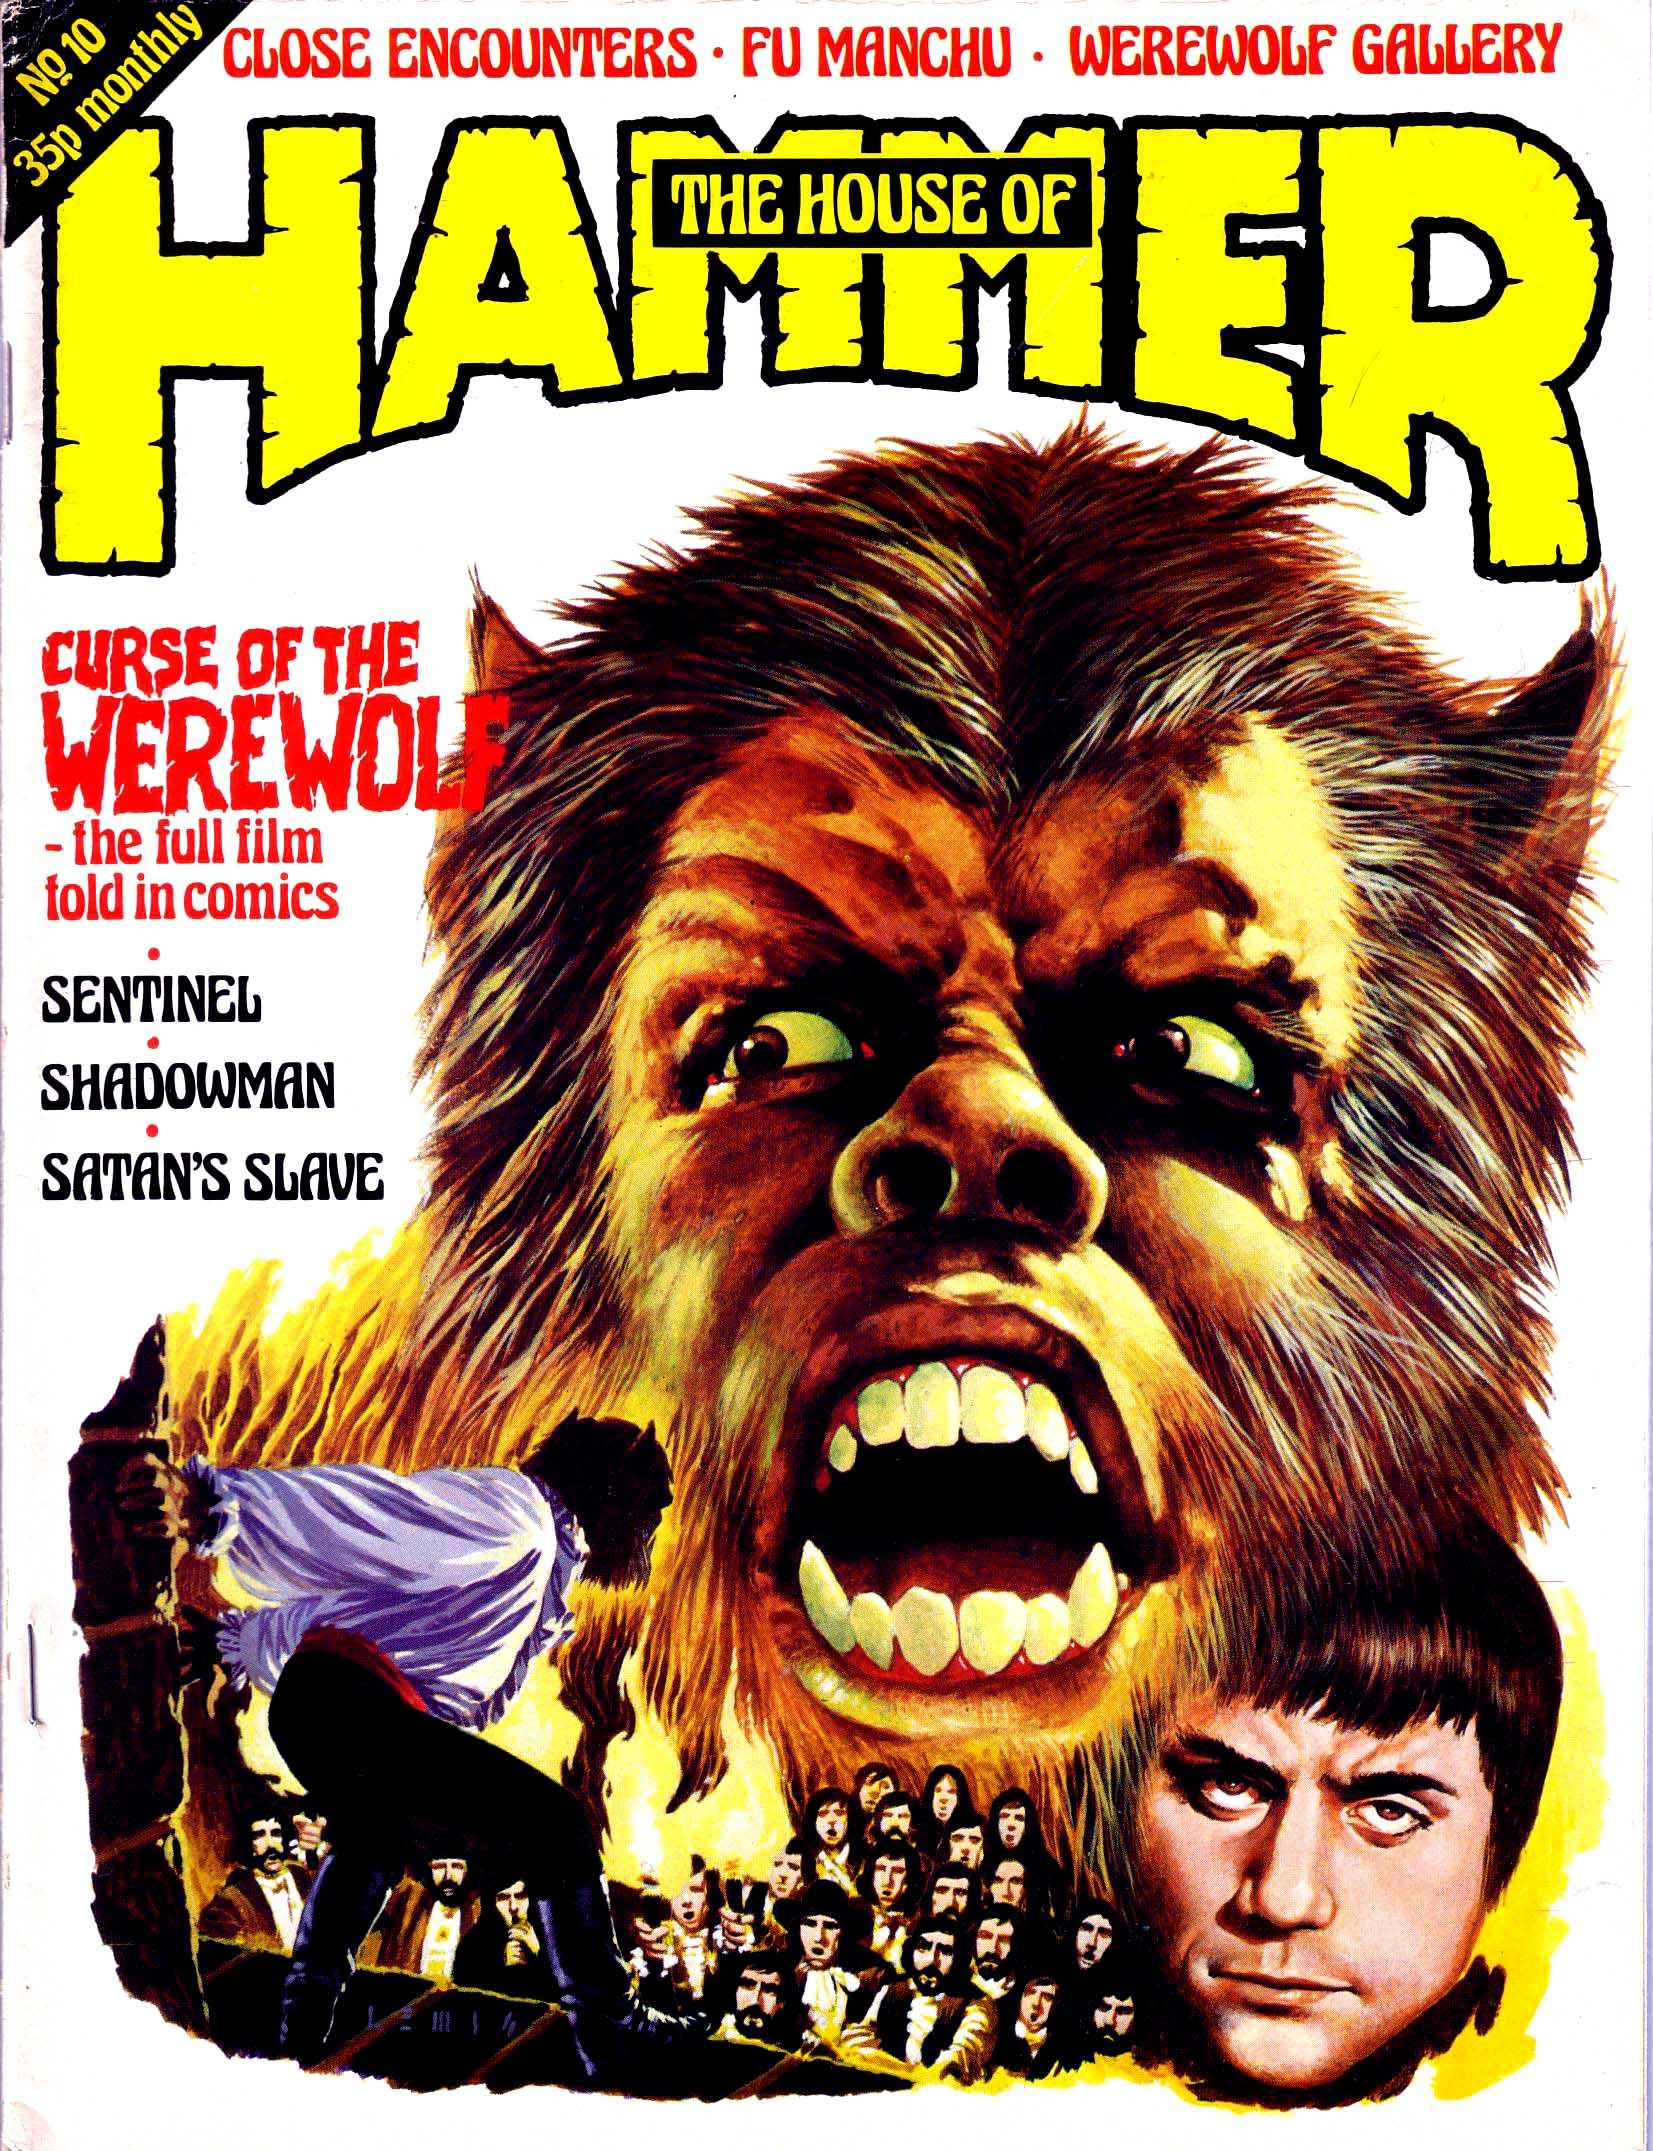 The House Of Hammer the house of hammer, vol. 1, no. 10, 1977 curse of the